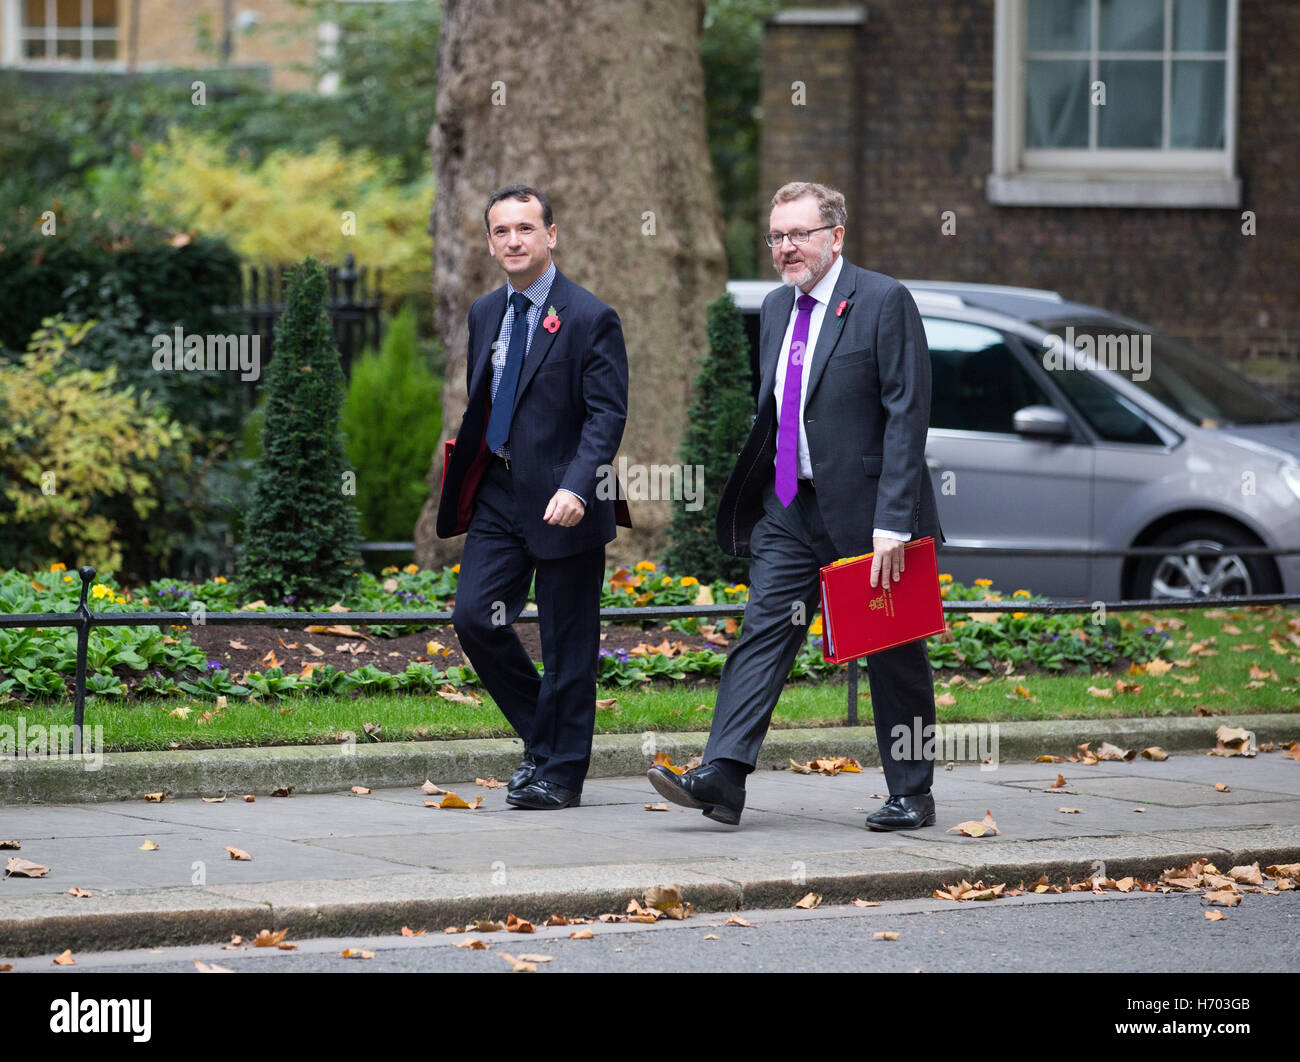 David Mundell,Scotland secretary,and Alun Cairns,Wales secretary, arrive at Downing street for a Cabinet meeting - Stock Image